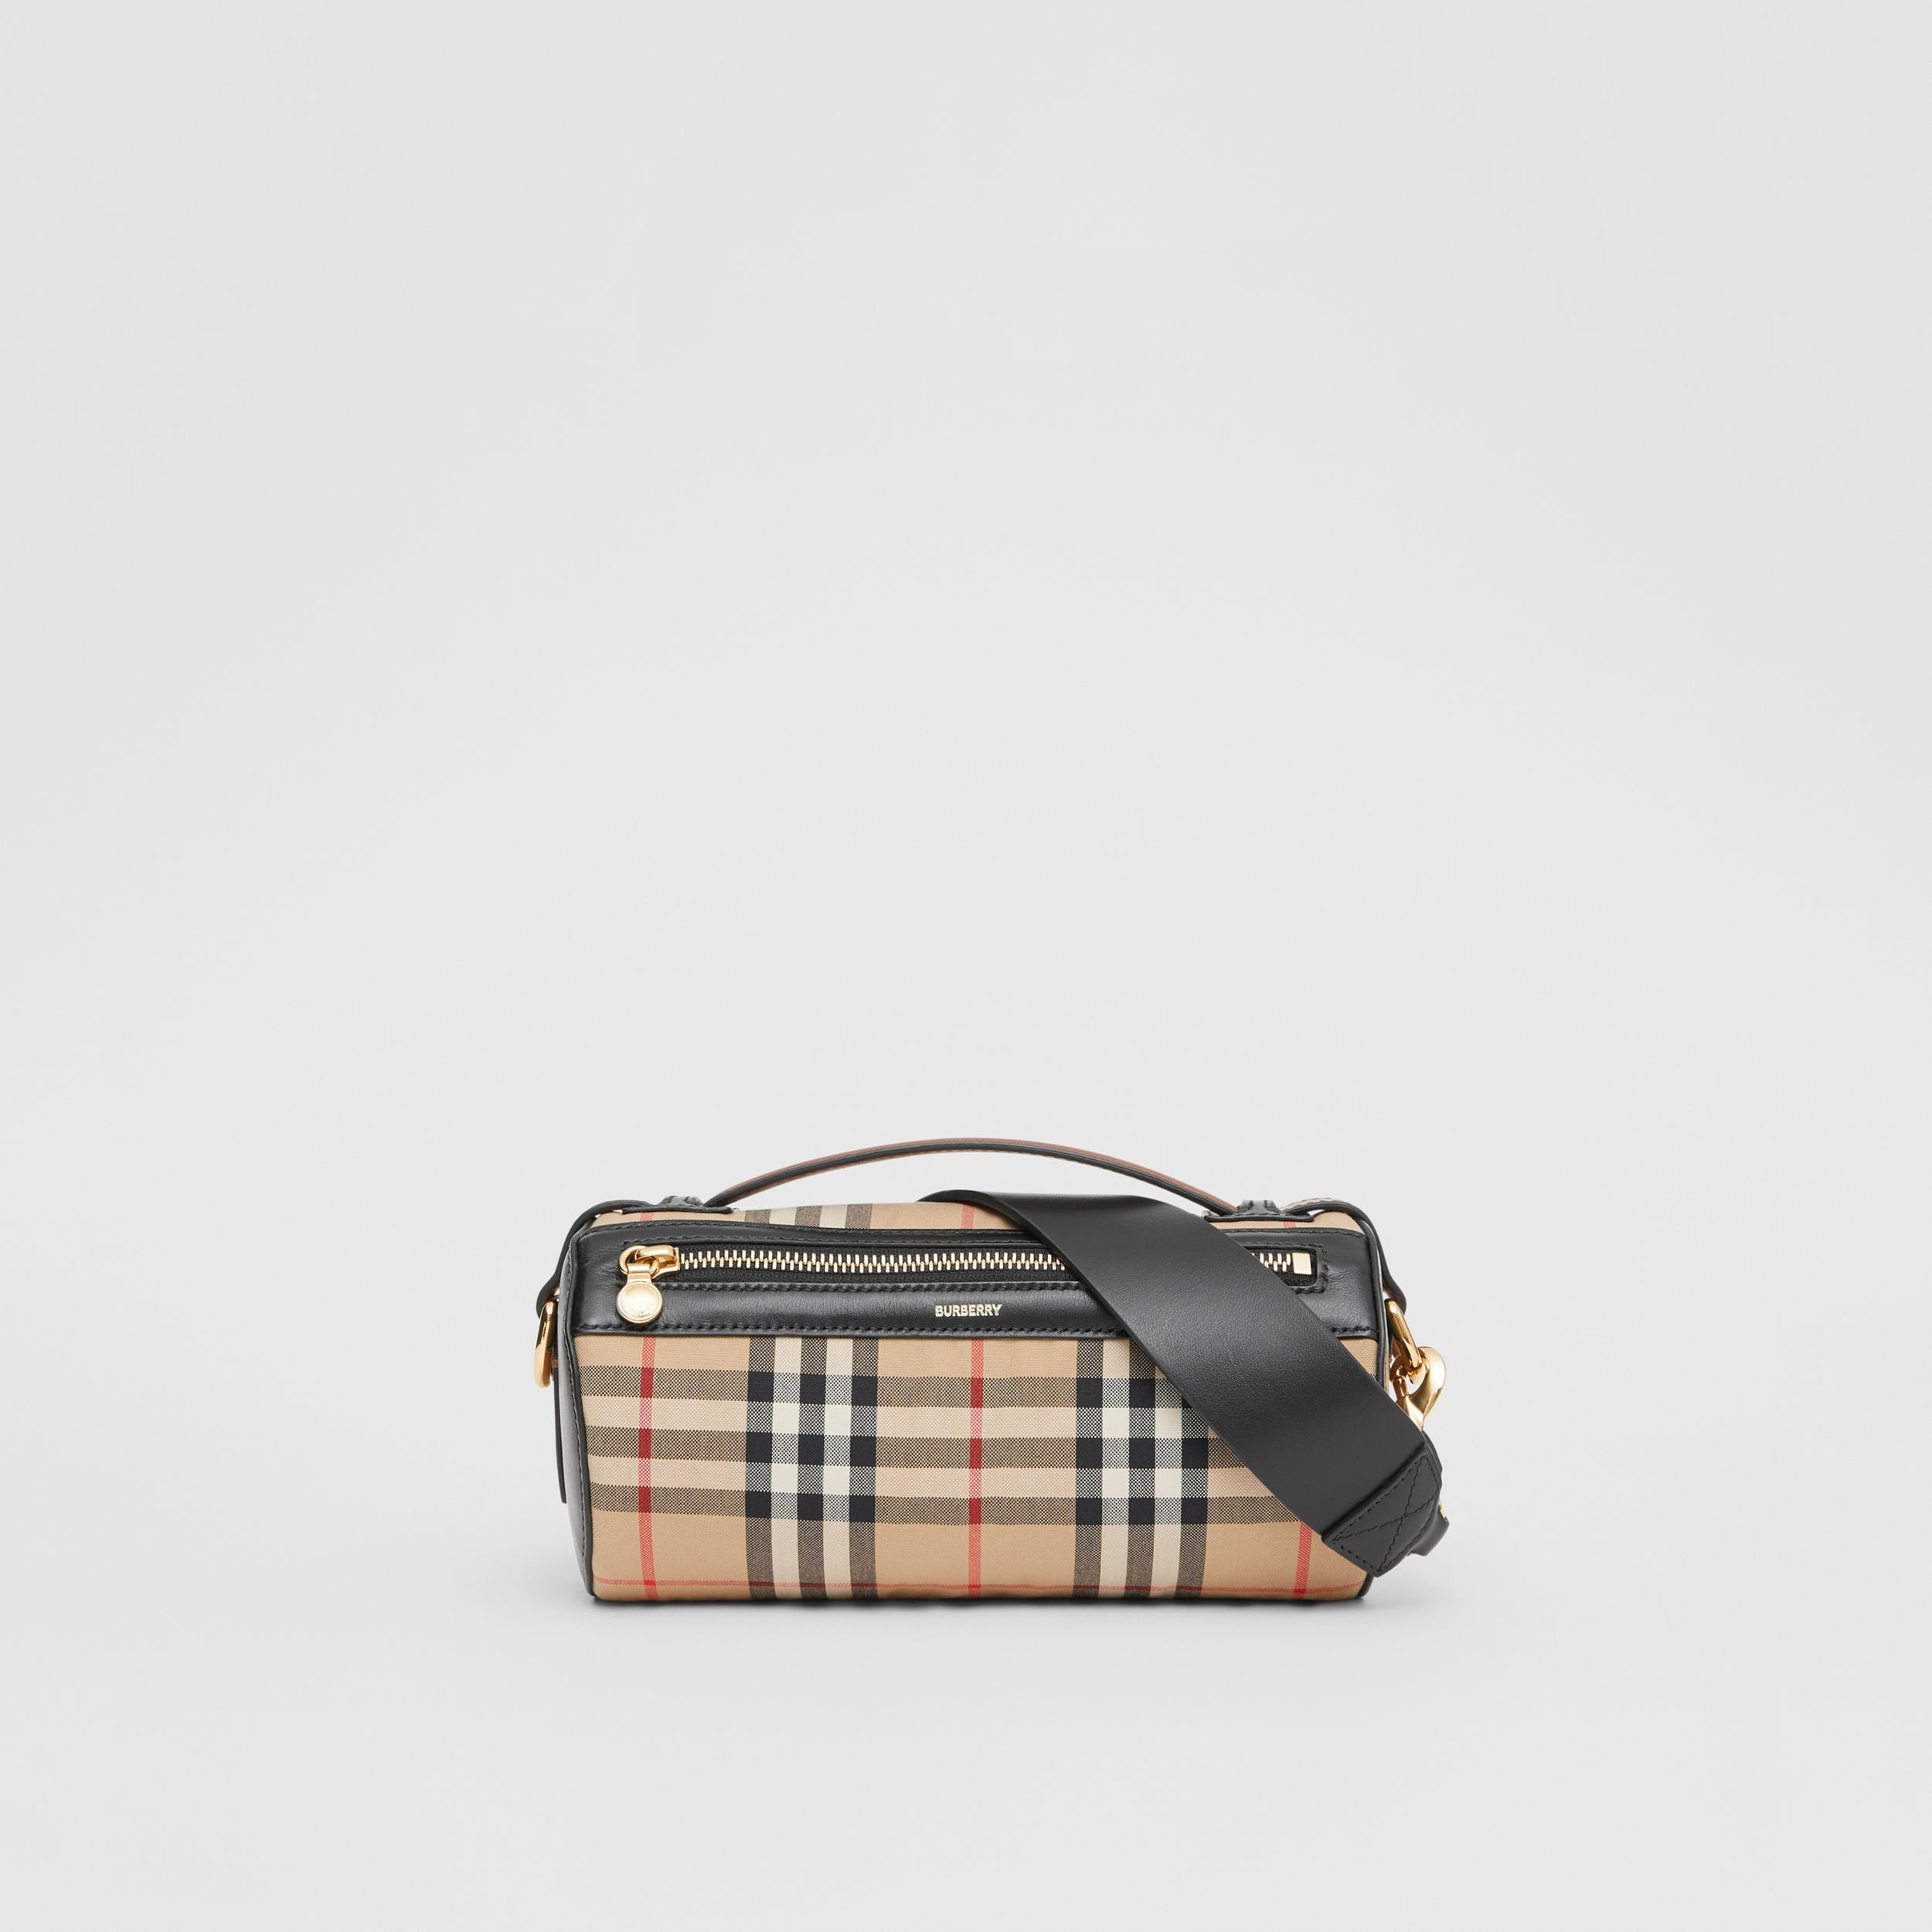 Borsa The Barrel con motivo Vintage check e finiture in pelle (Beige Archivio/nero) - Donna | Burberry - 1